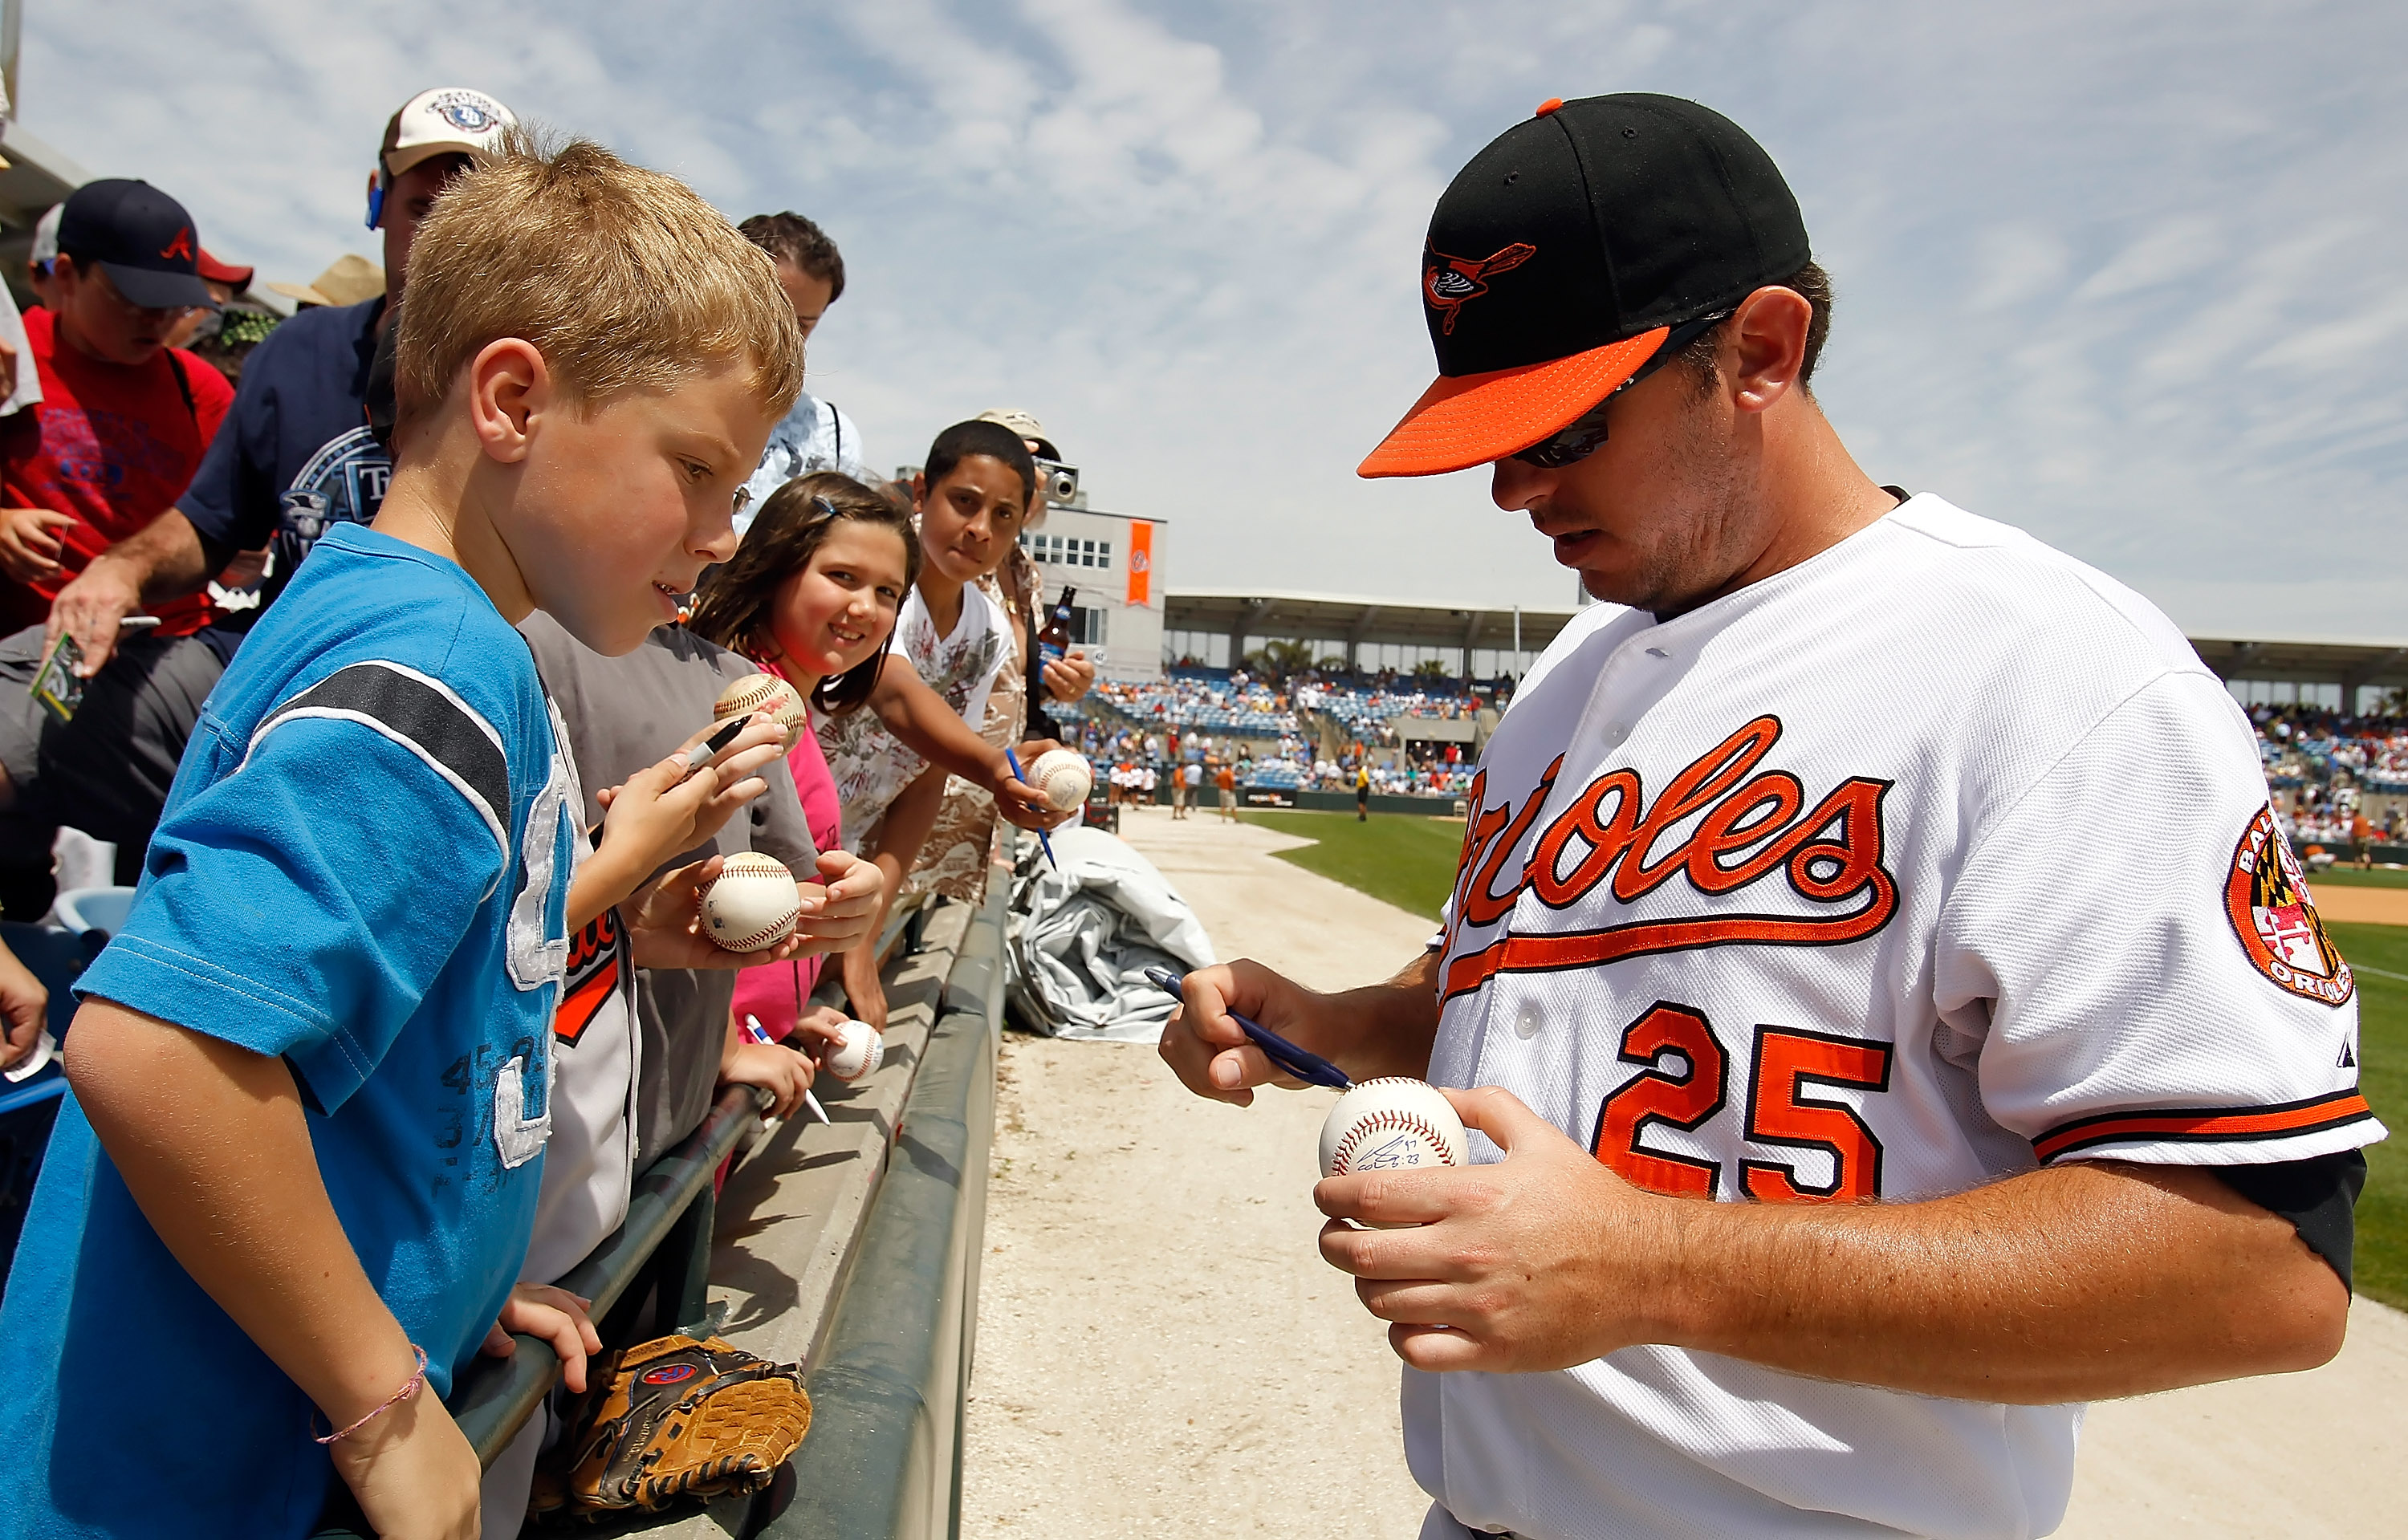 SARASOTA, FL - APRIL 03:  Infielder Garrett Atkins #25 of the Baltimore Orioles signs autographs prior to the start of the Grapefruit League Spring Training Game against the New York Mets at Ed Smith Stadium on April 3, 2010 in Sarasota, Florida.  (Photo